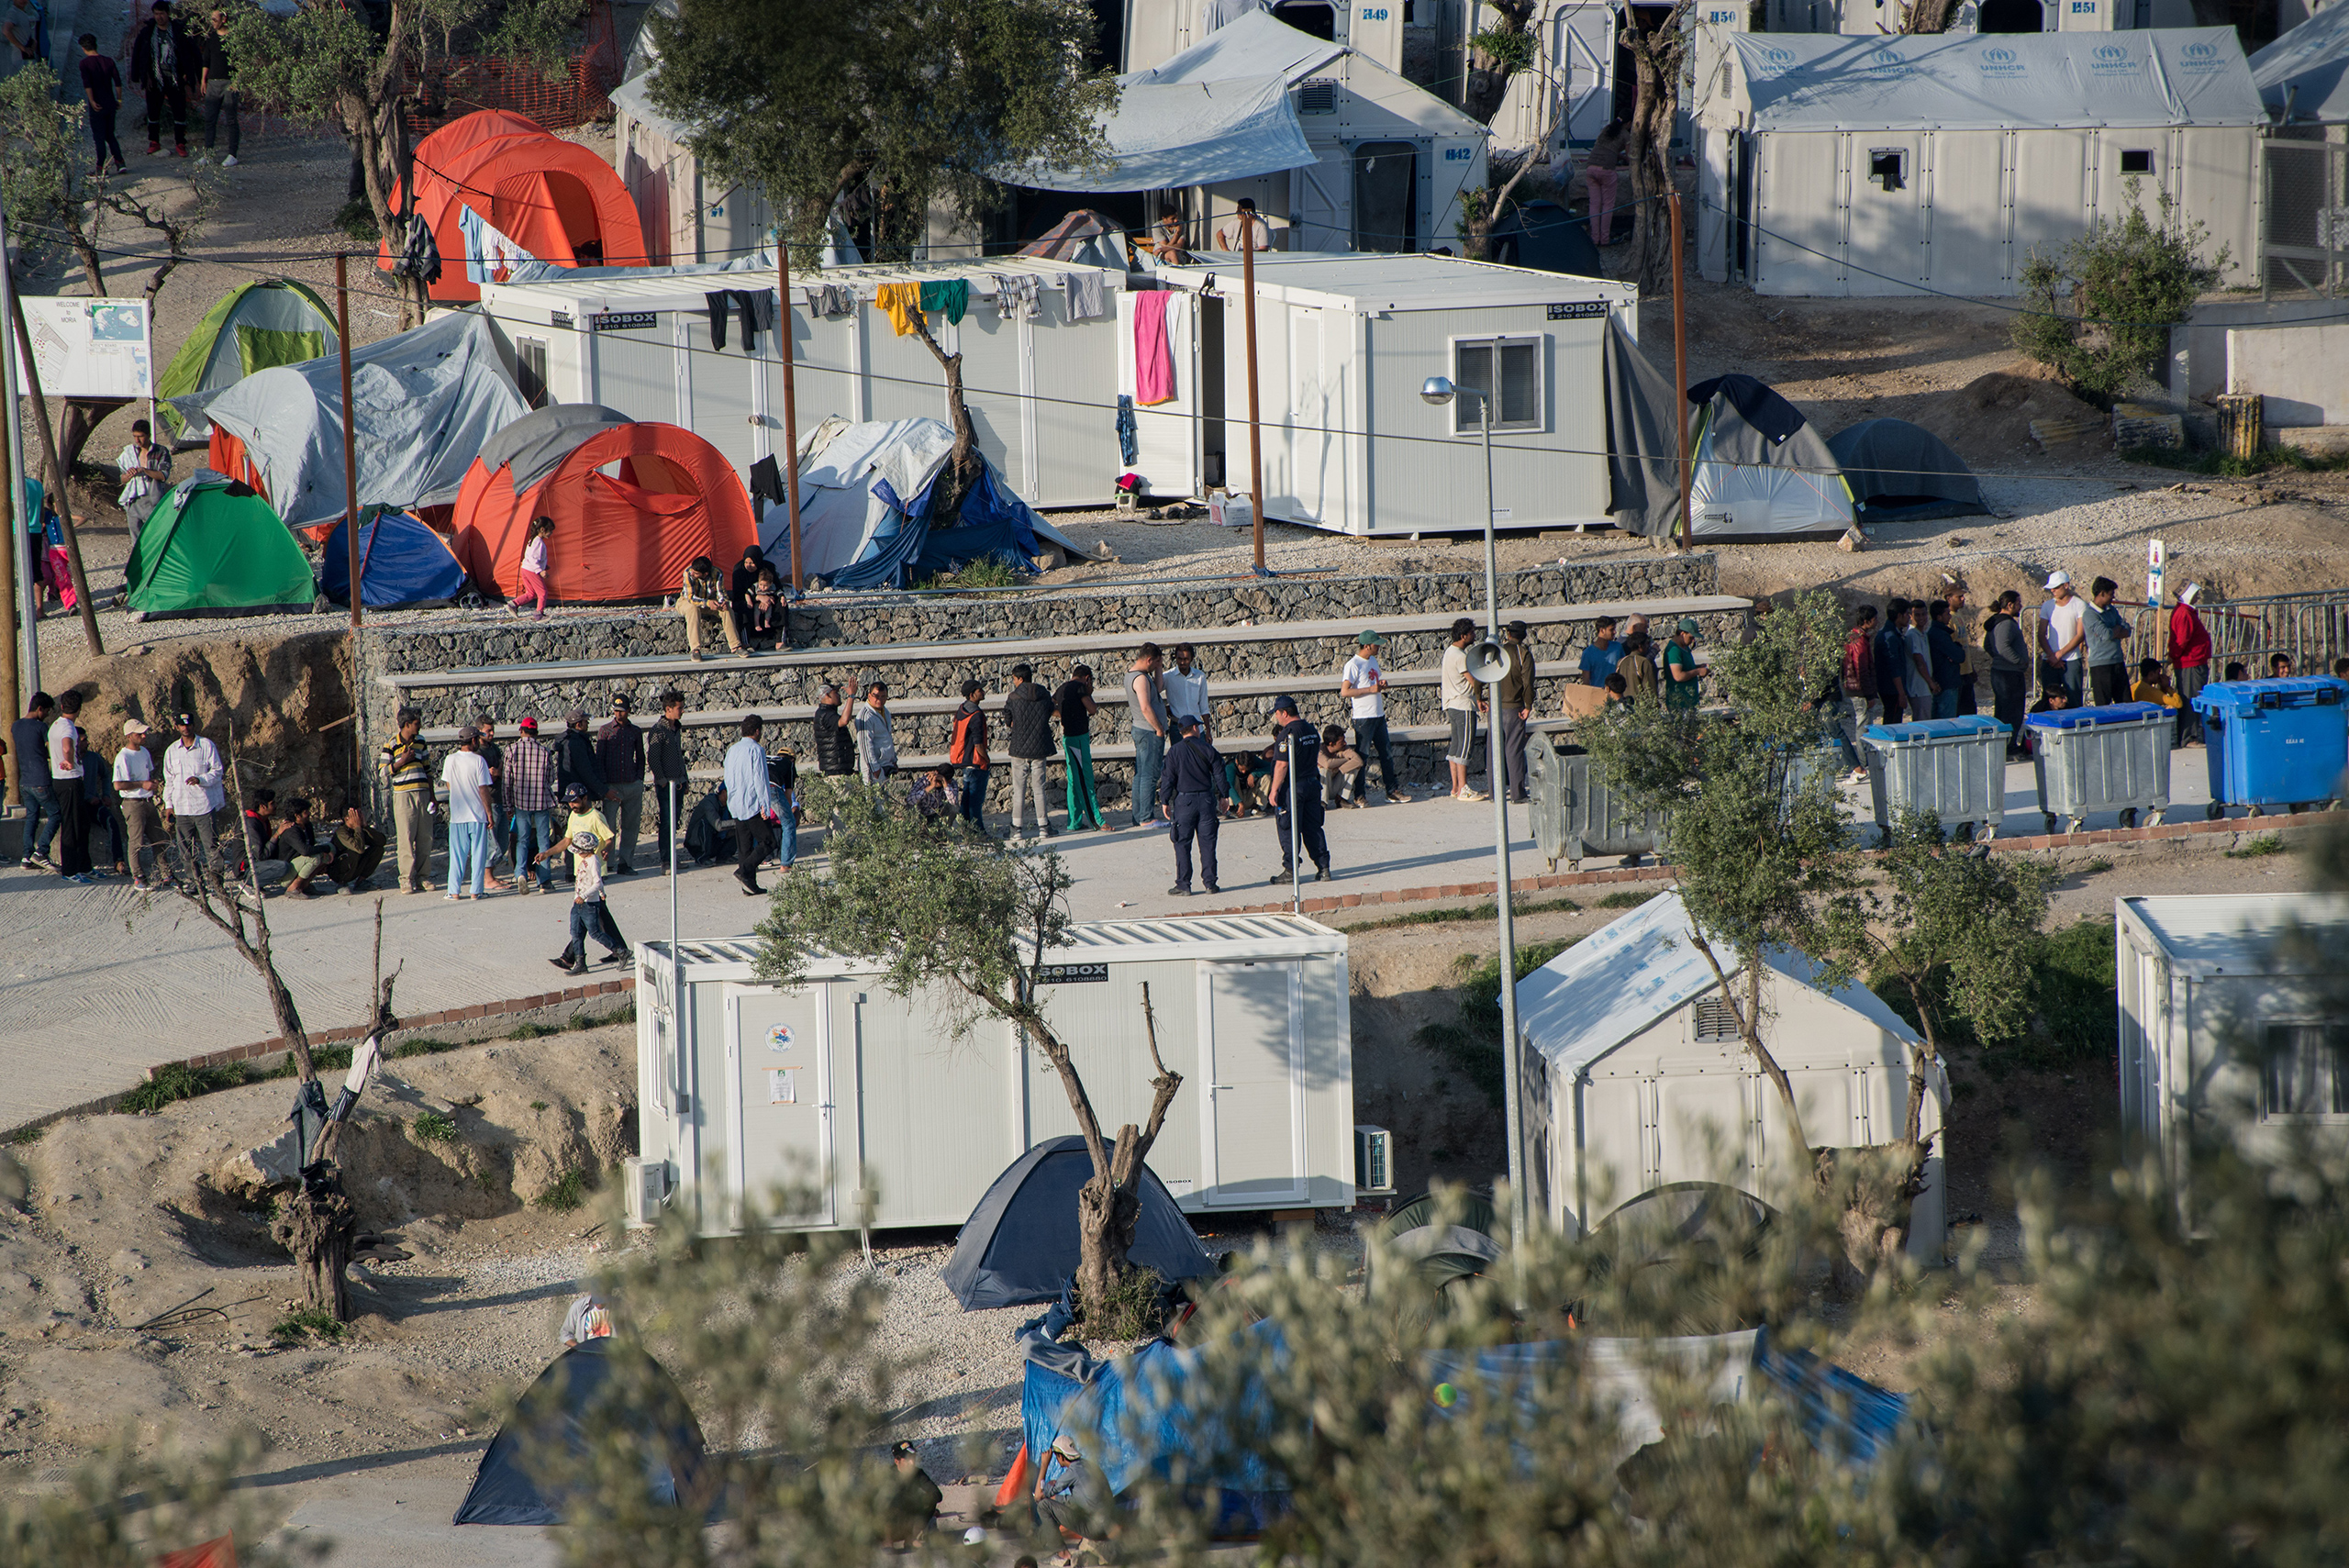 People wait in line at the Moria camp for migrants and refugees located in Mytilene, on the Greek island of Lesbos, April 13, 2016. Pope Francis will visit the island on April 15.